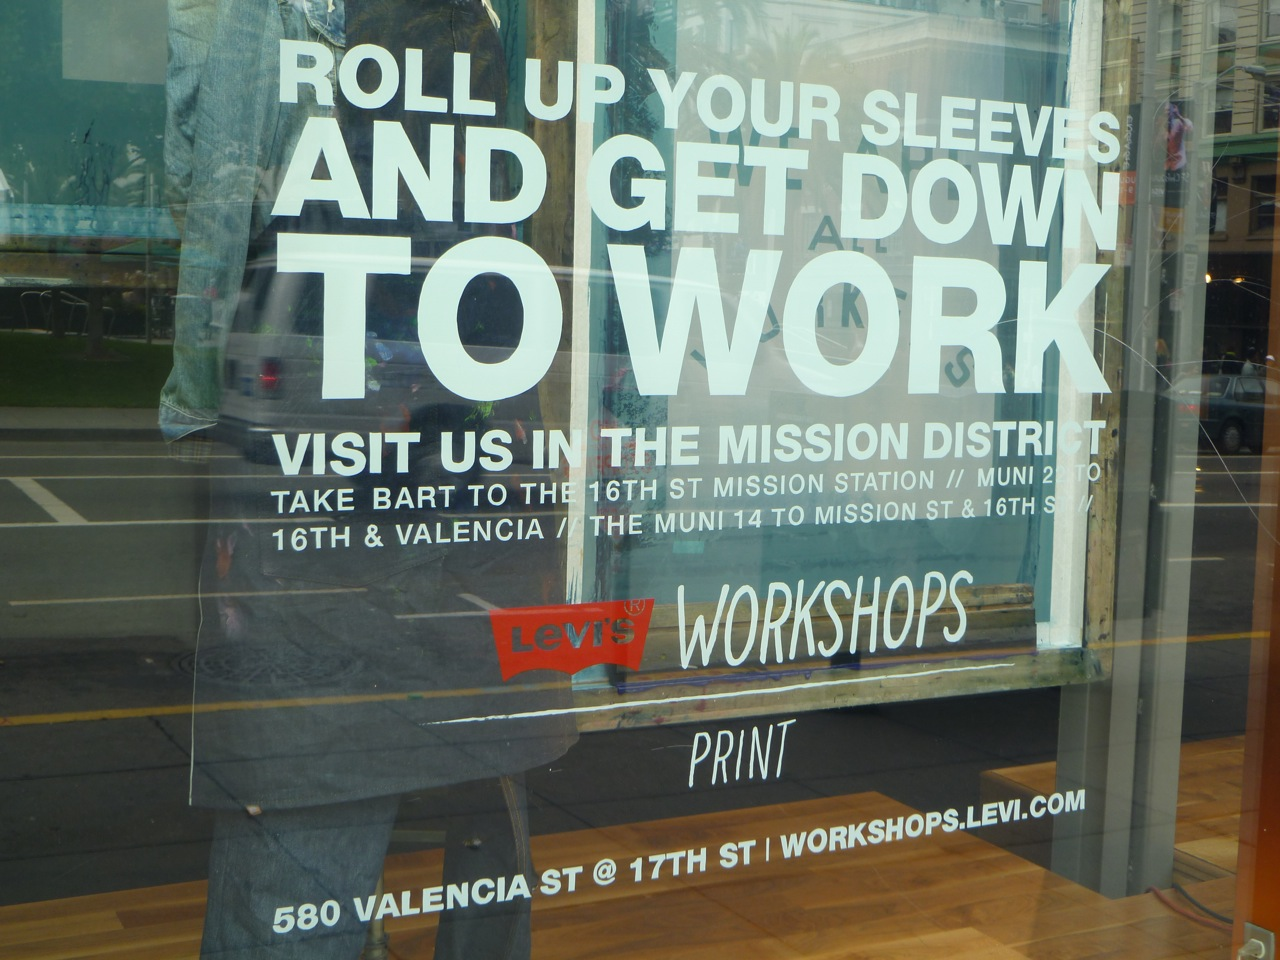 WINDOW-levis-workshop-union-square_5877681113_o.jpg